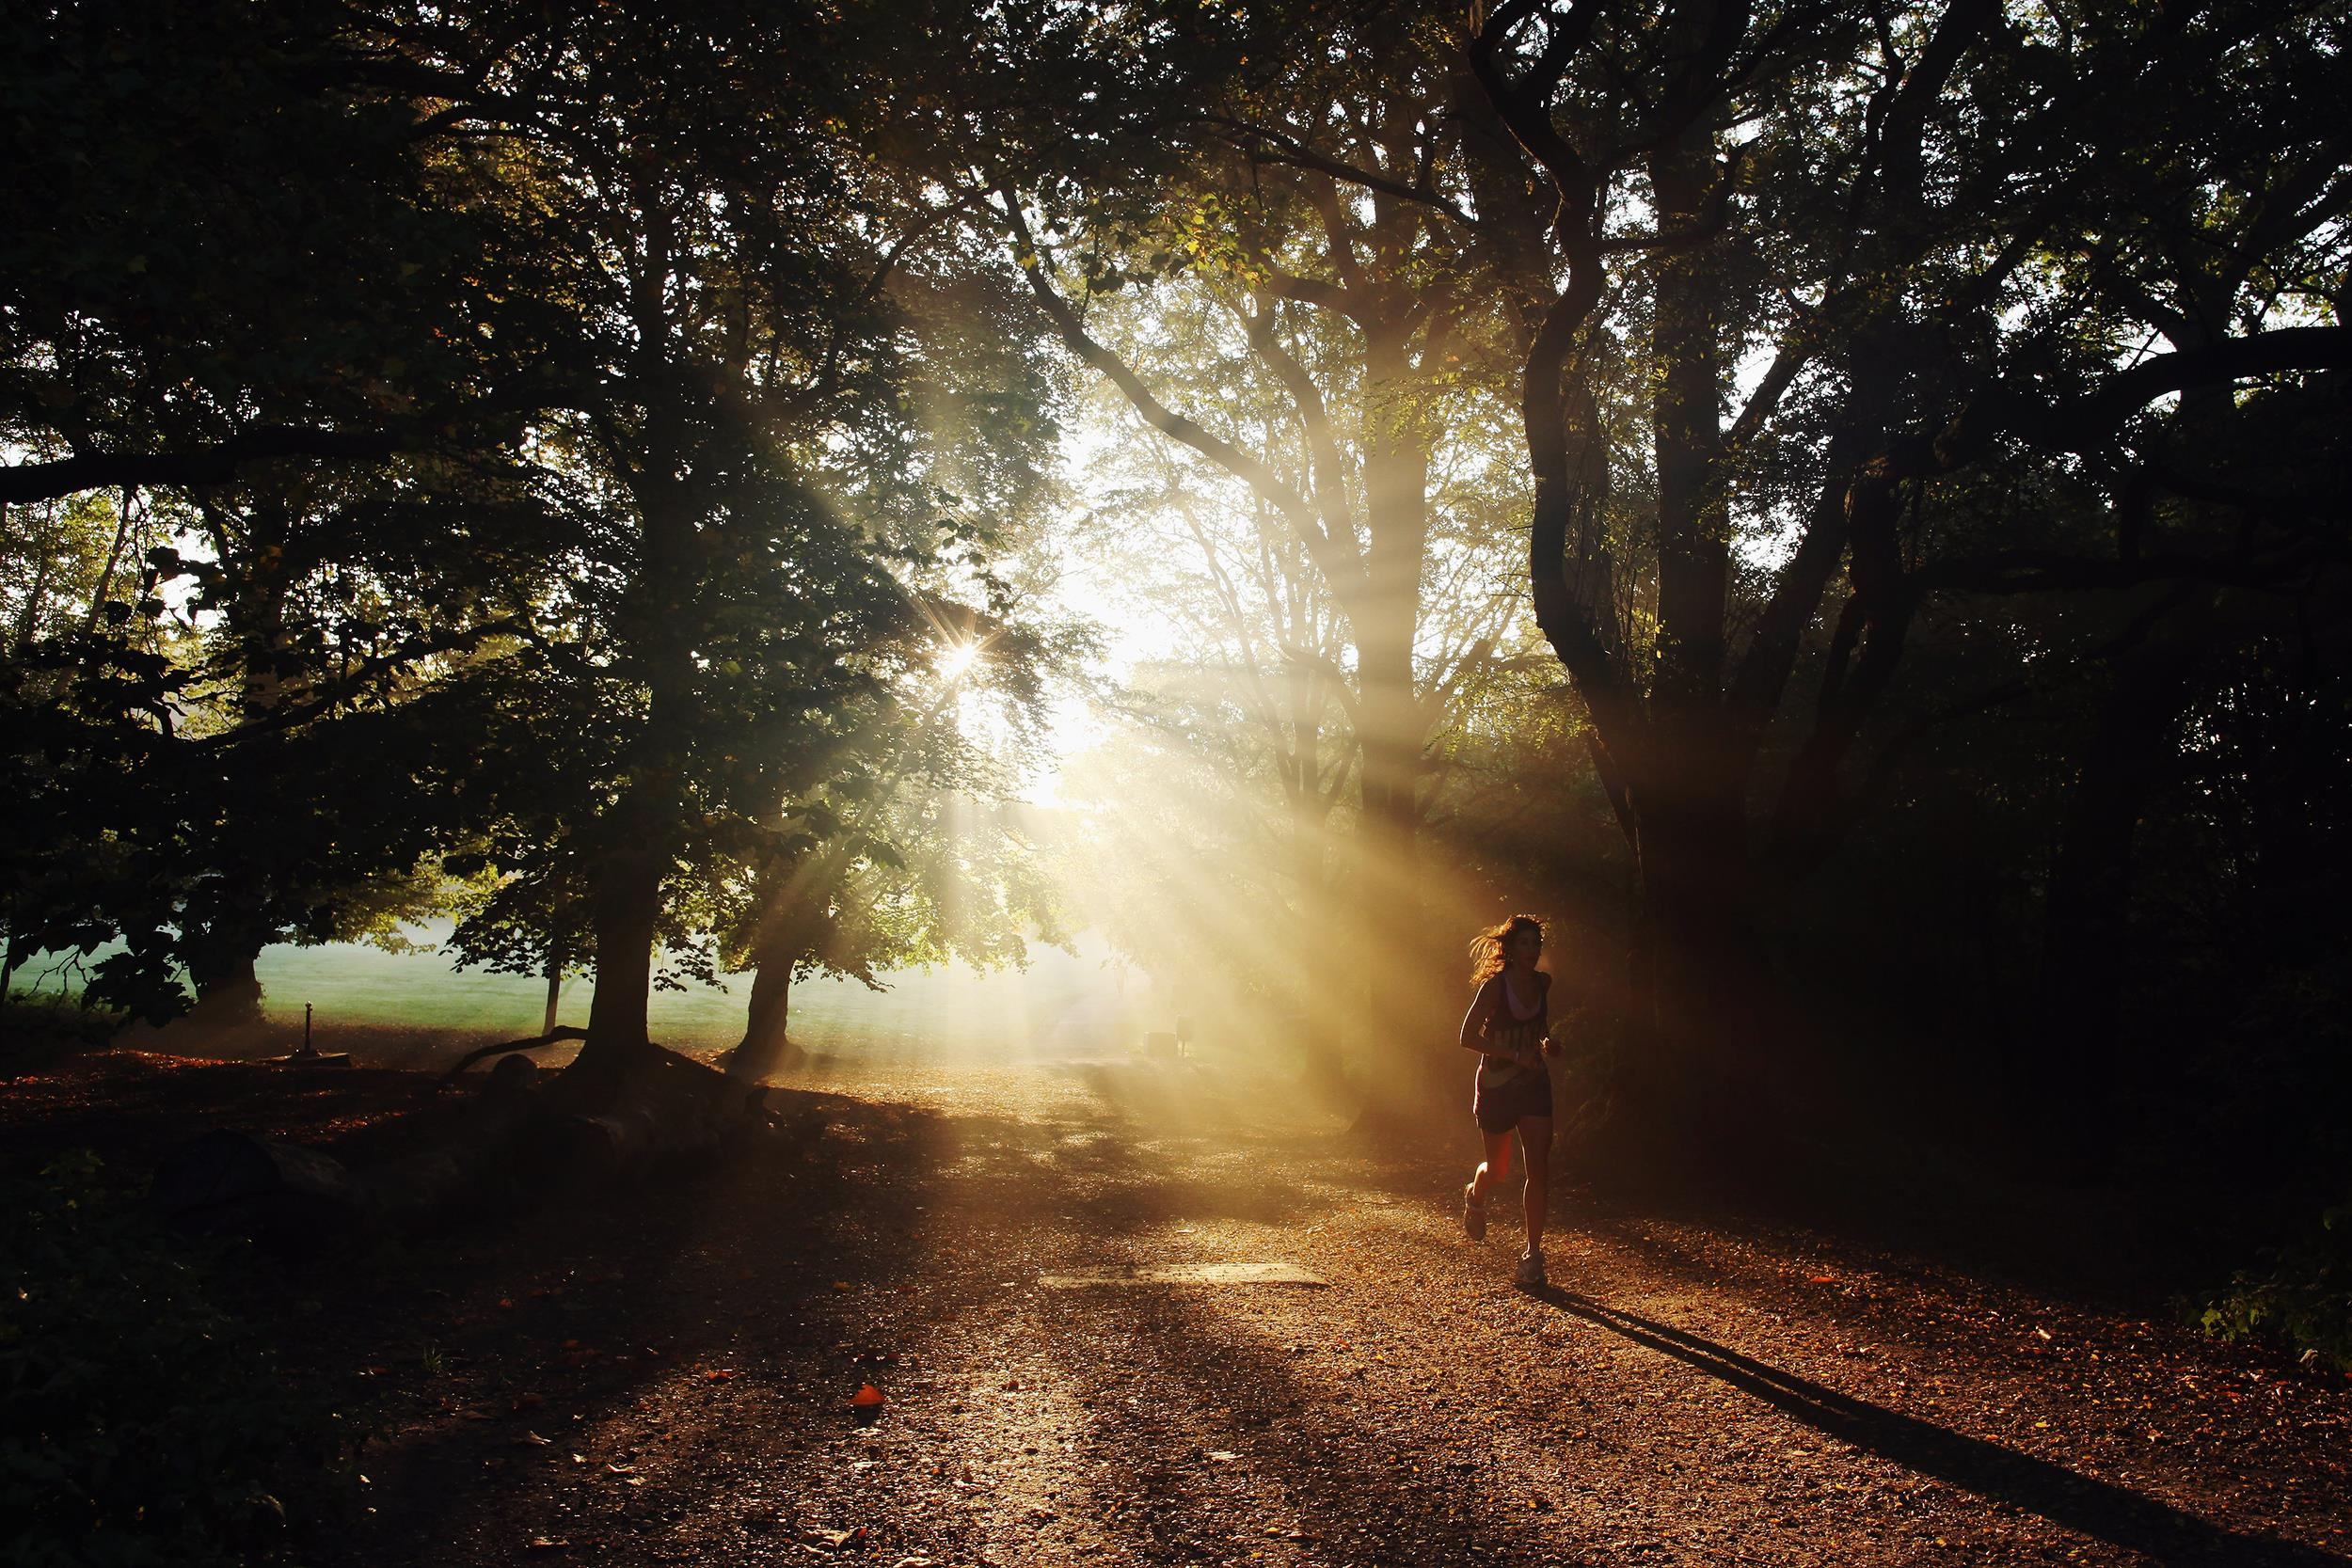 Morning Light Could Be Key to Leaner Physique, Study Finds